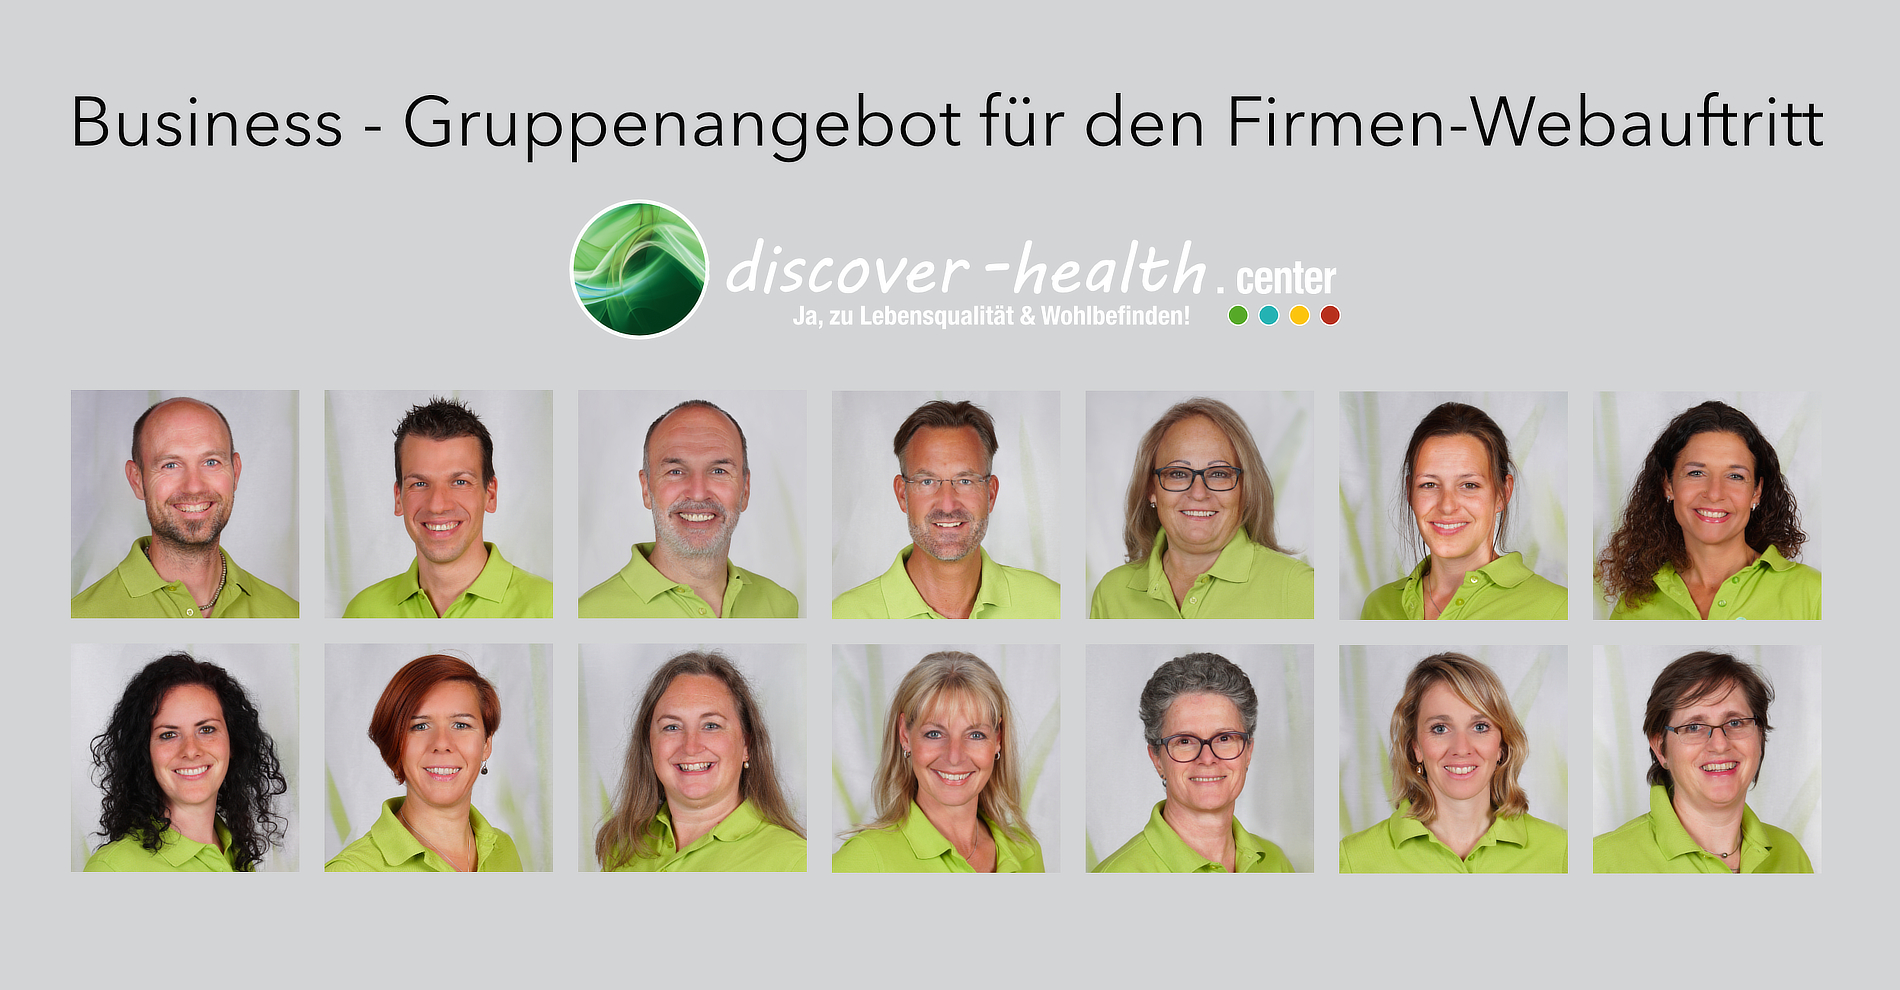 BusinessGruppe2019jpg